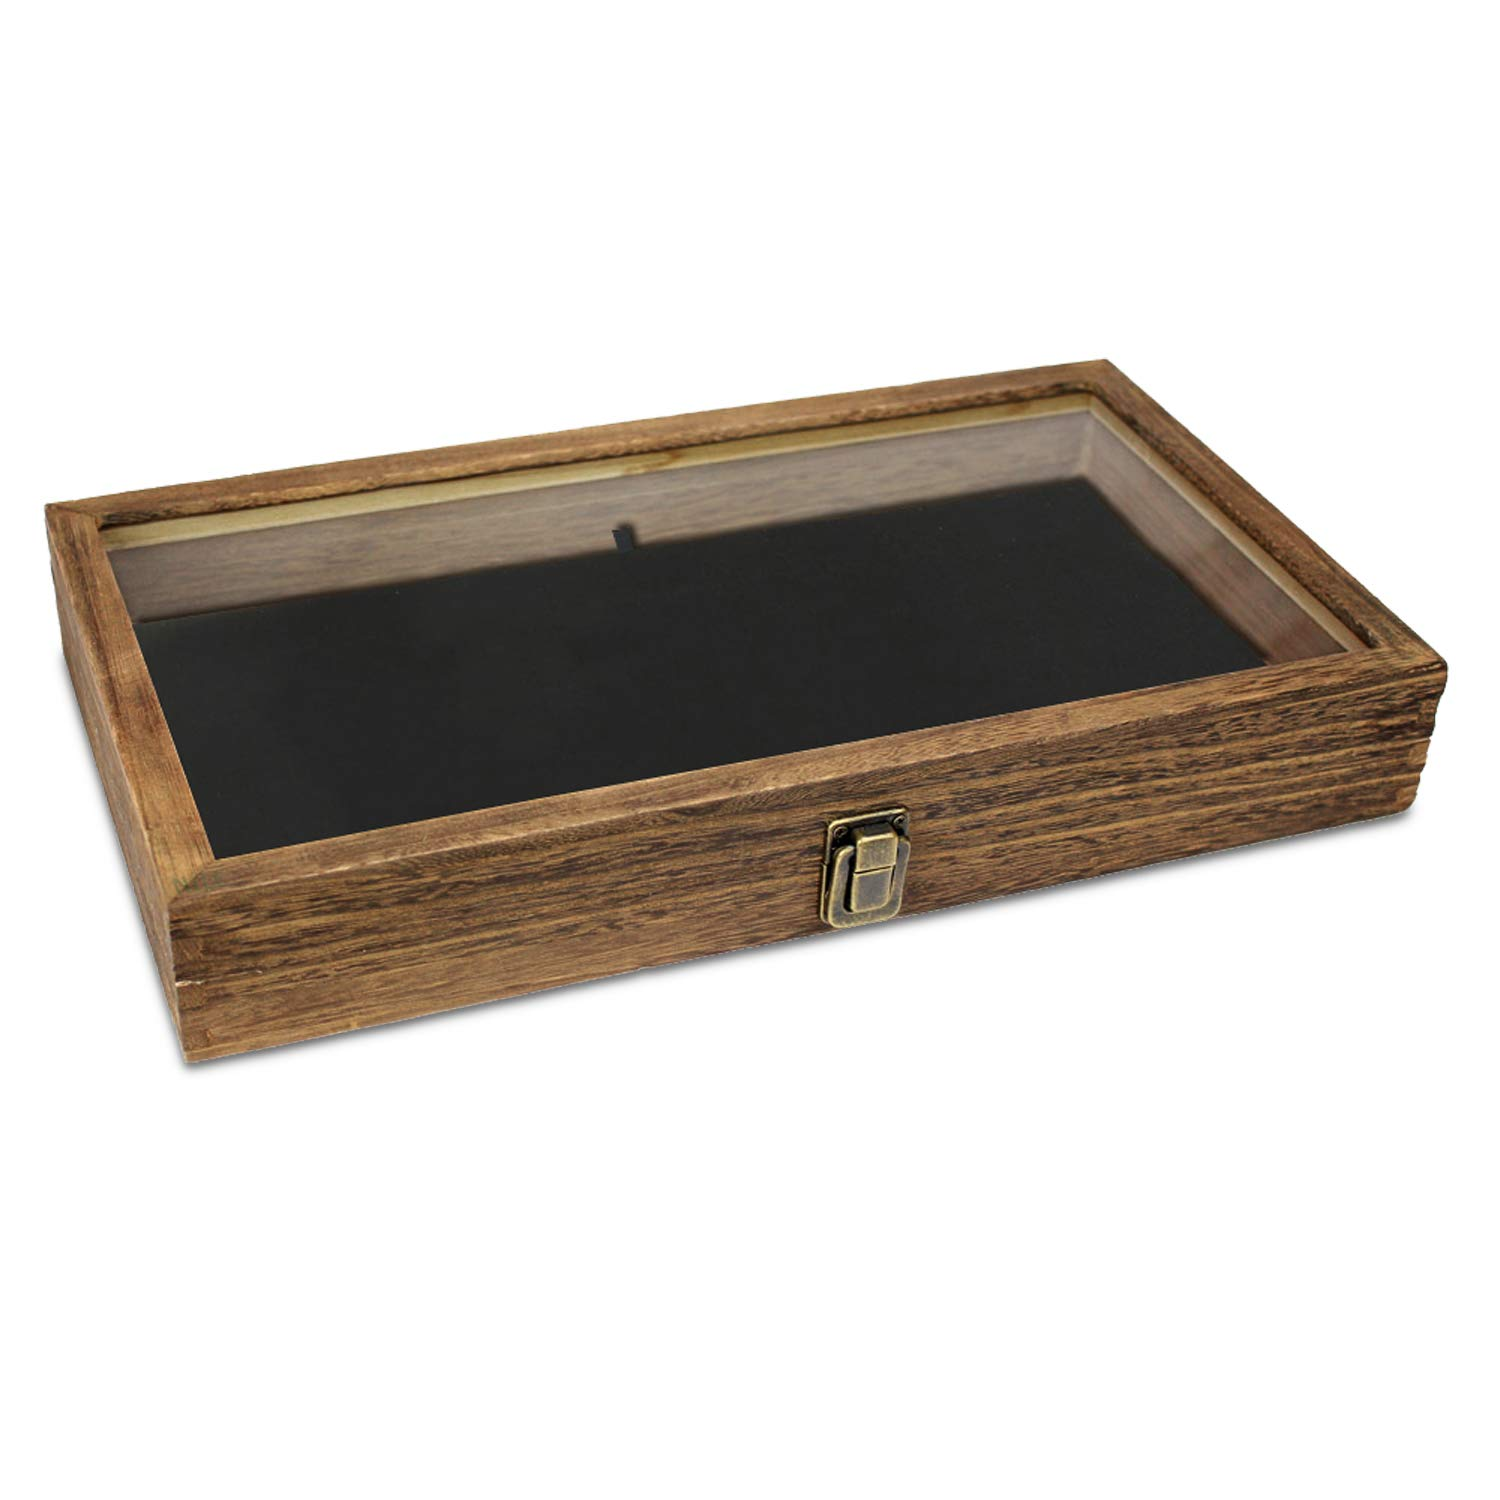 Mooca Wooden Jewelry Display case with Tempered Glass Top Lid, Brown Color